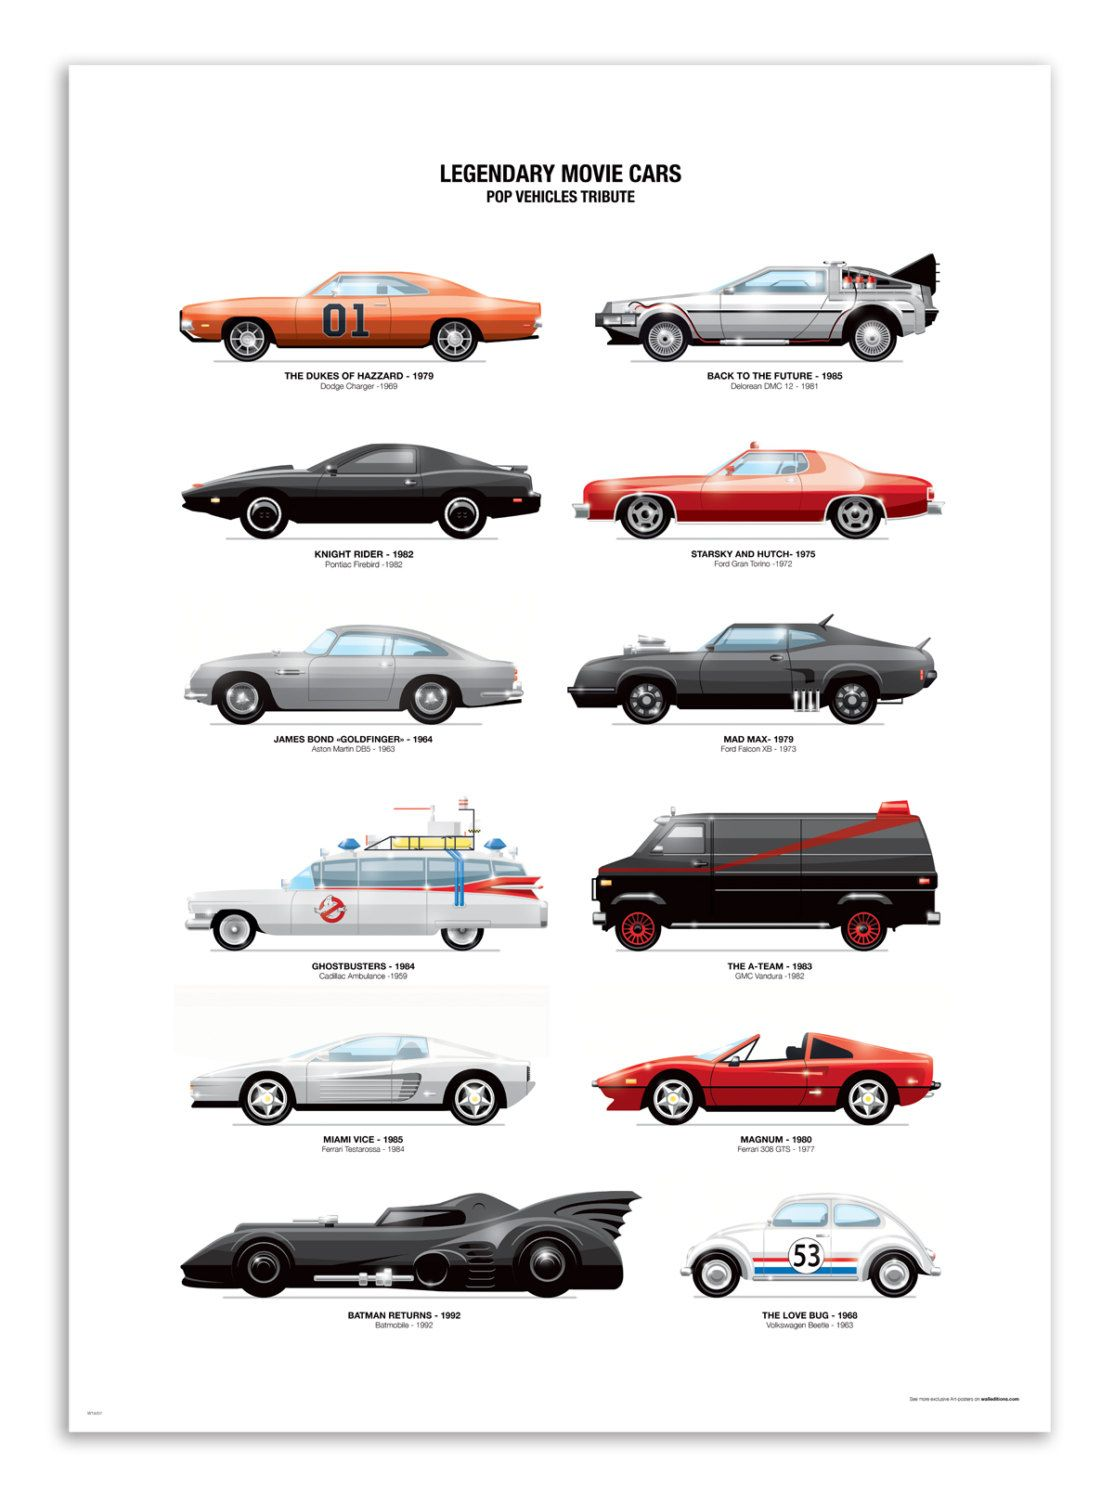 art poster 50 x 70 cm legandary movie cars cars and. Black Bedroom Furniture Sets. Home Design Ideas